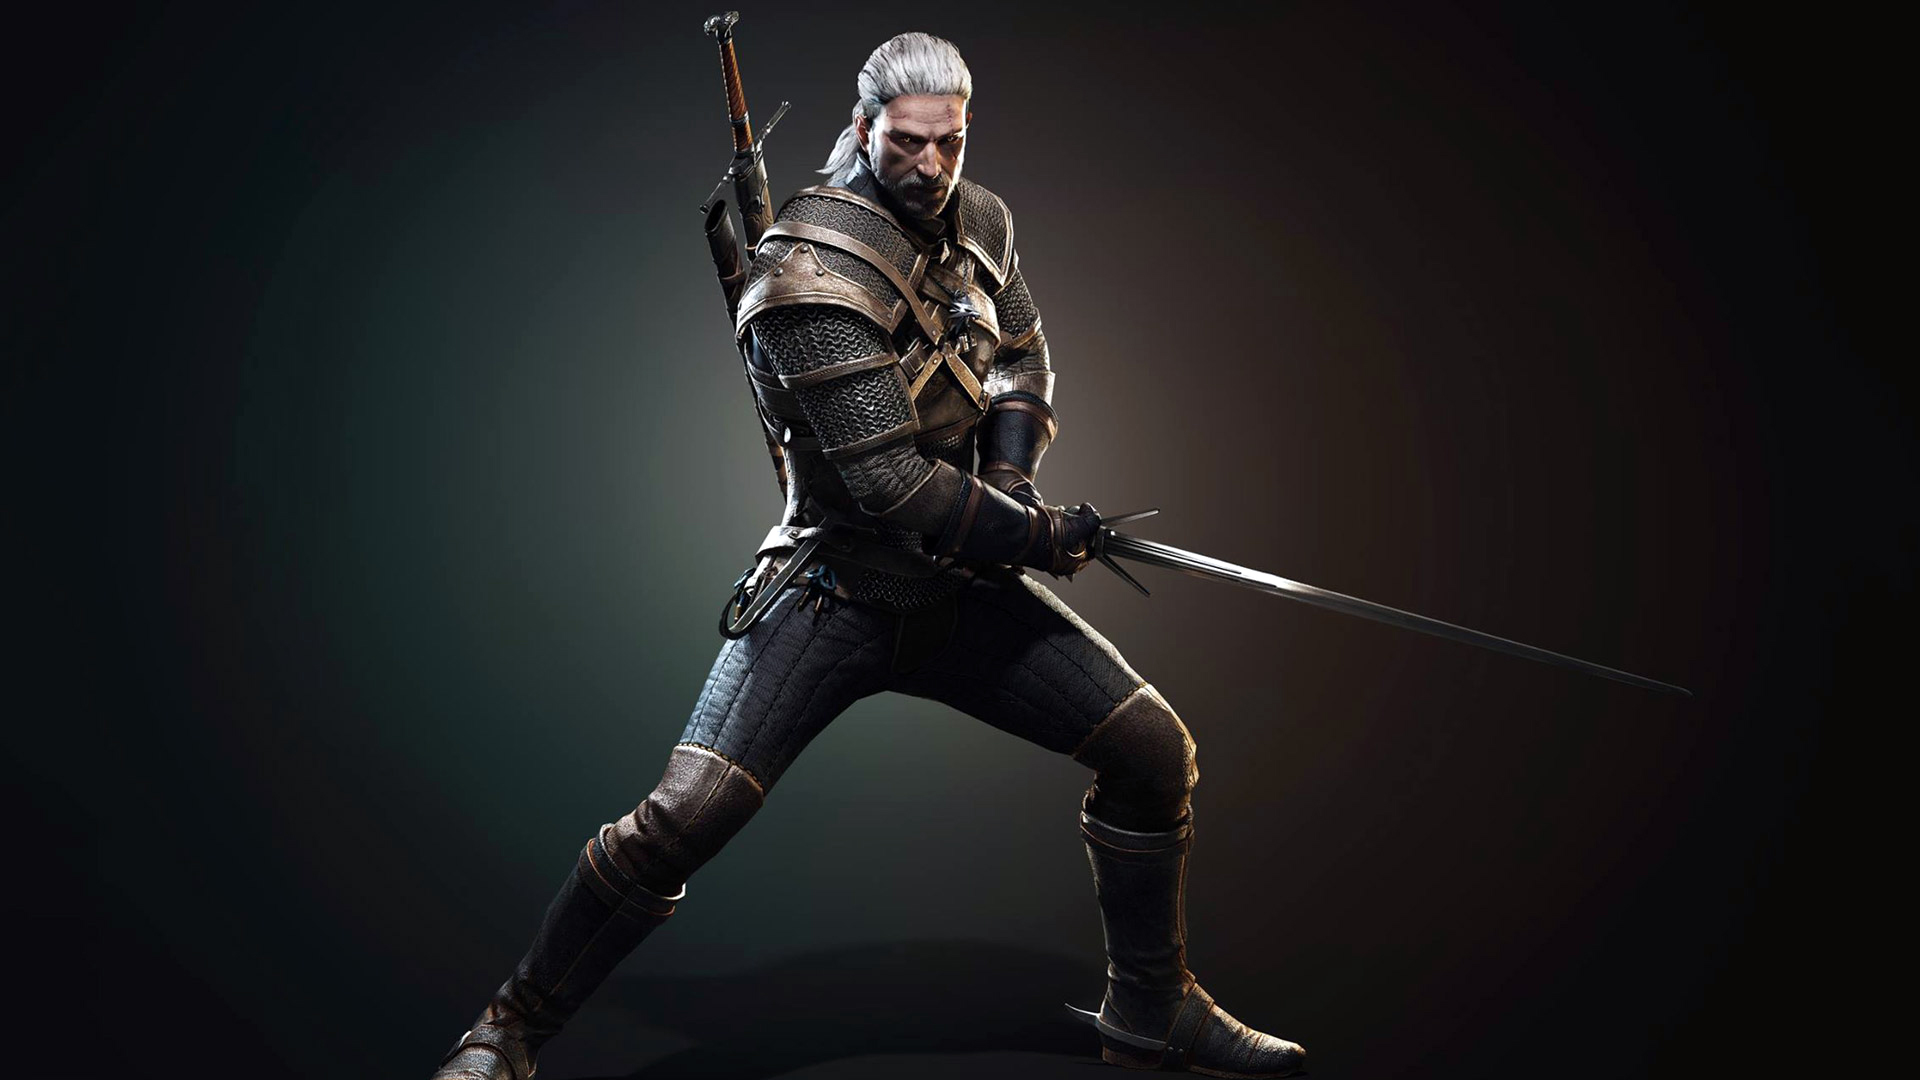 The Witcher 3 - Wild Hunt wallpapers (12)   HD Wallpapers